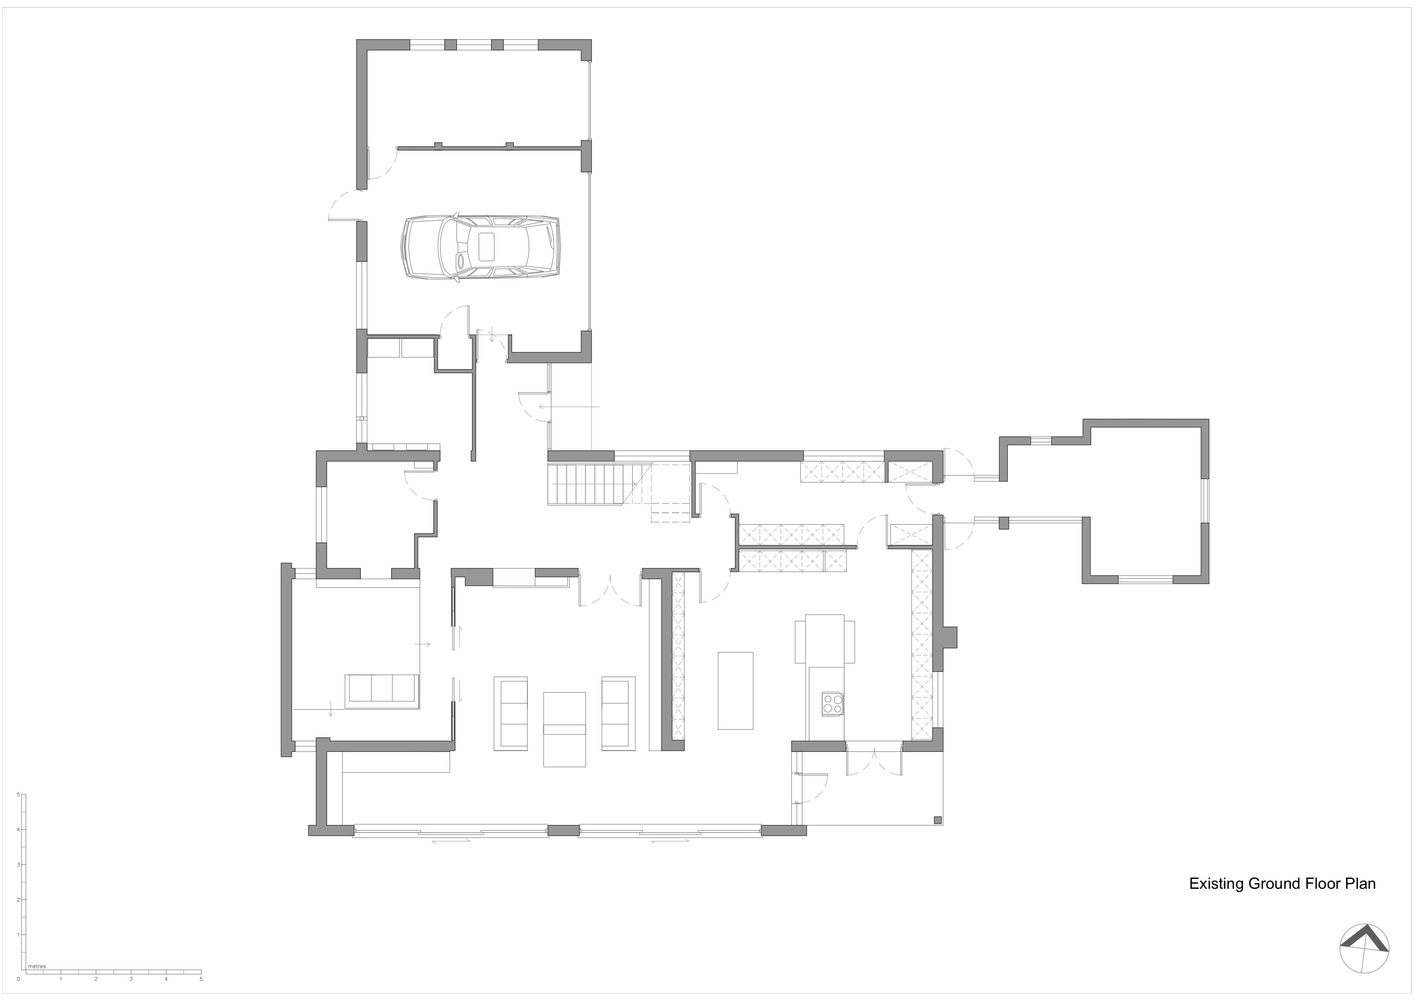 How to draw a floor plan of an existing house for How to get floor plans of an existing building